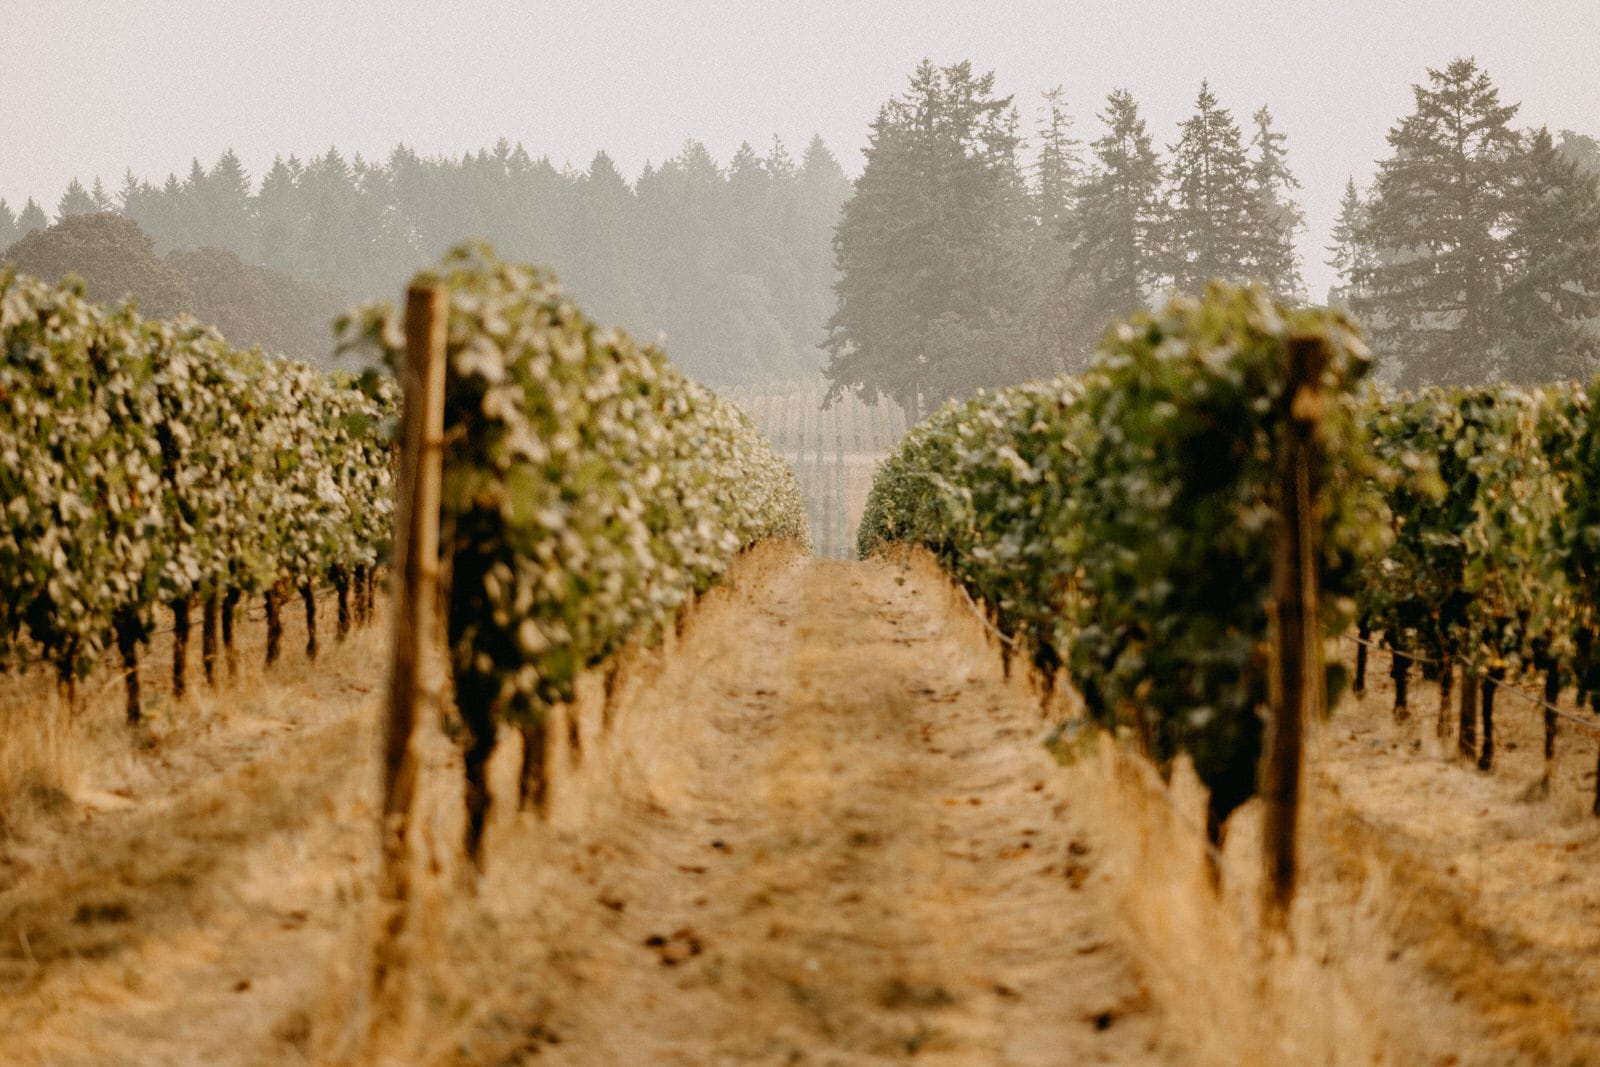 domaine de broglie vineyard in oregon